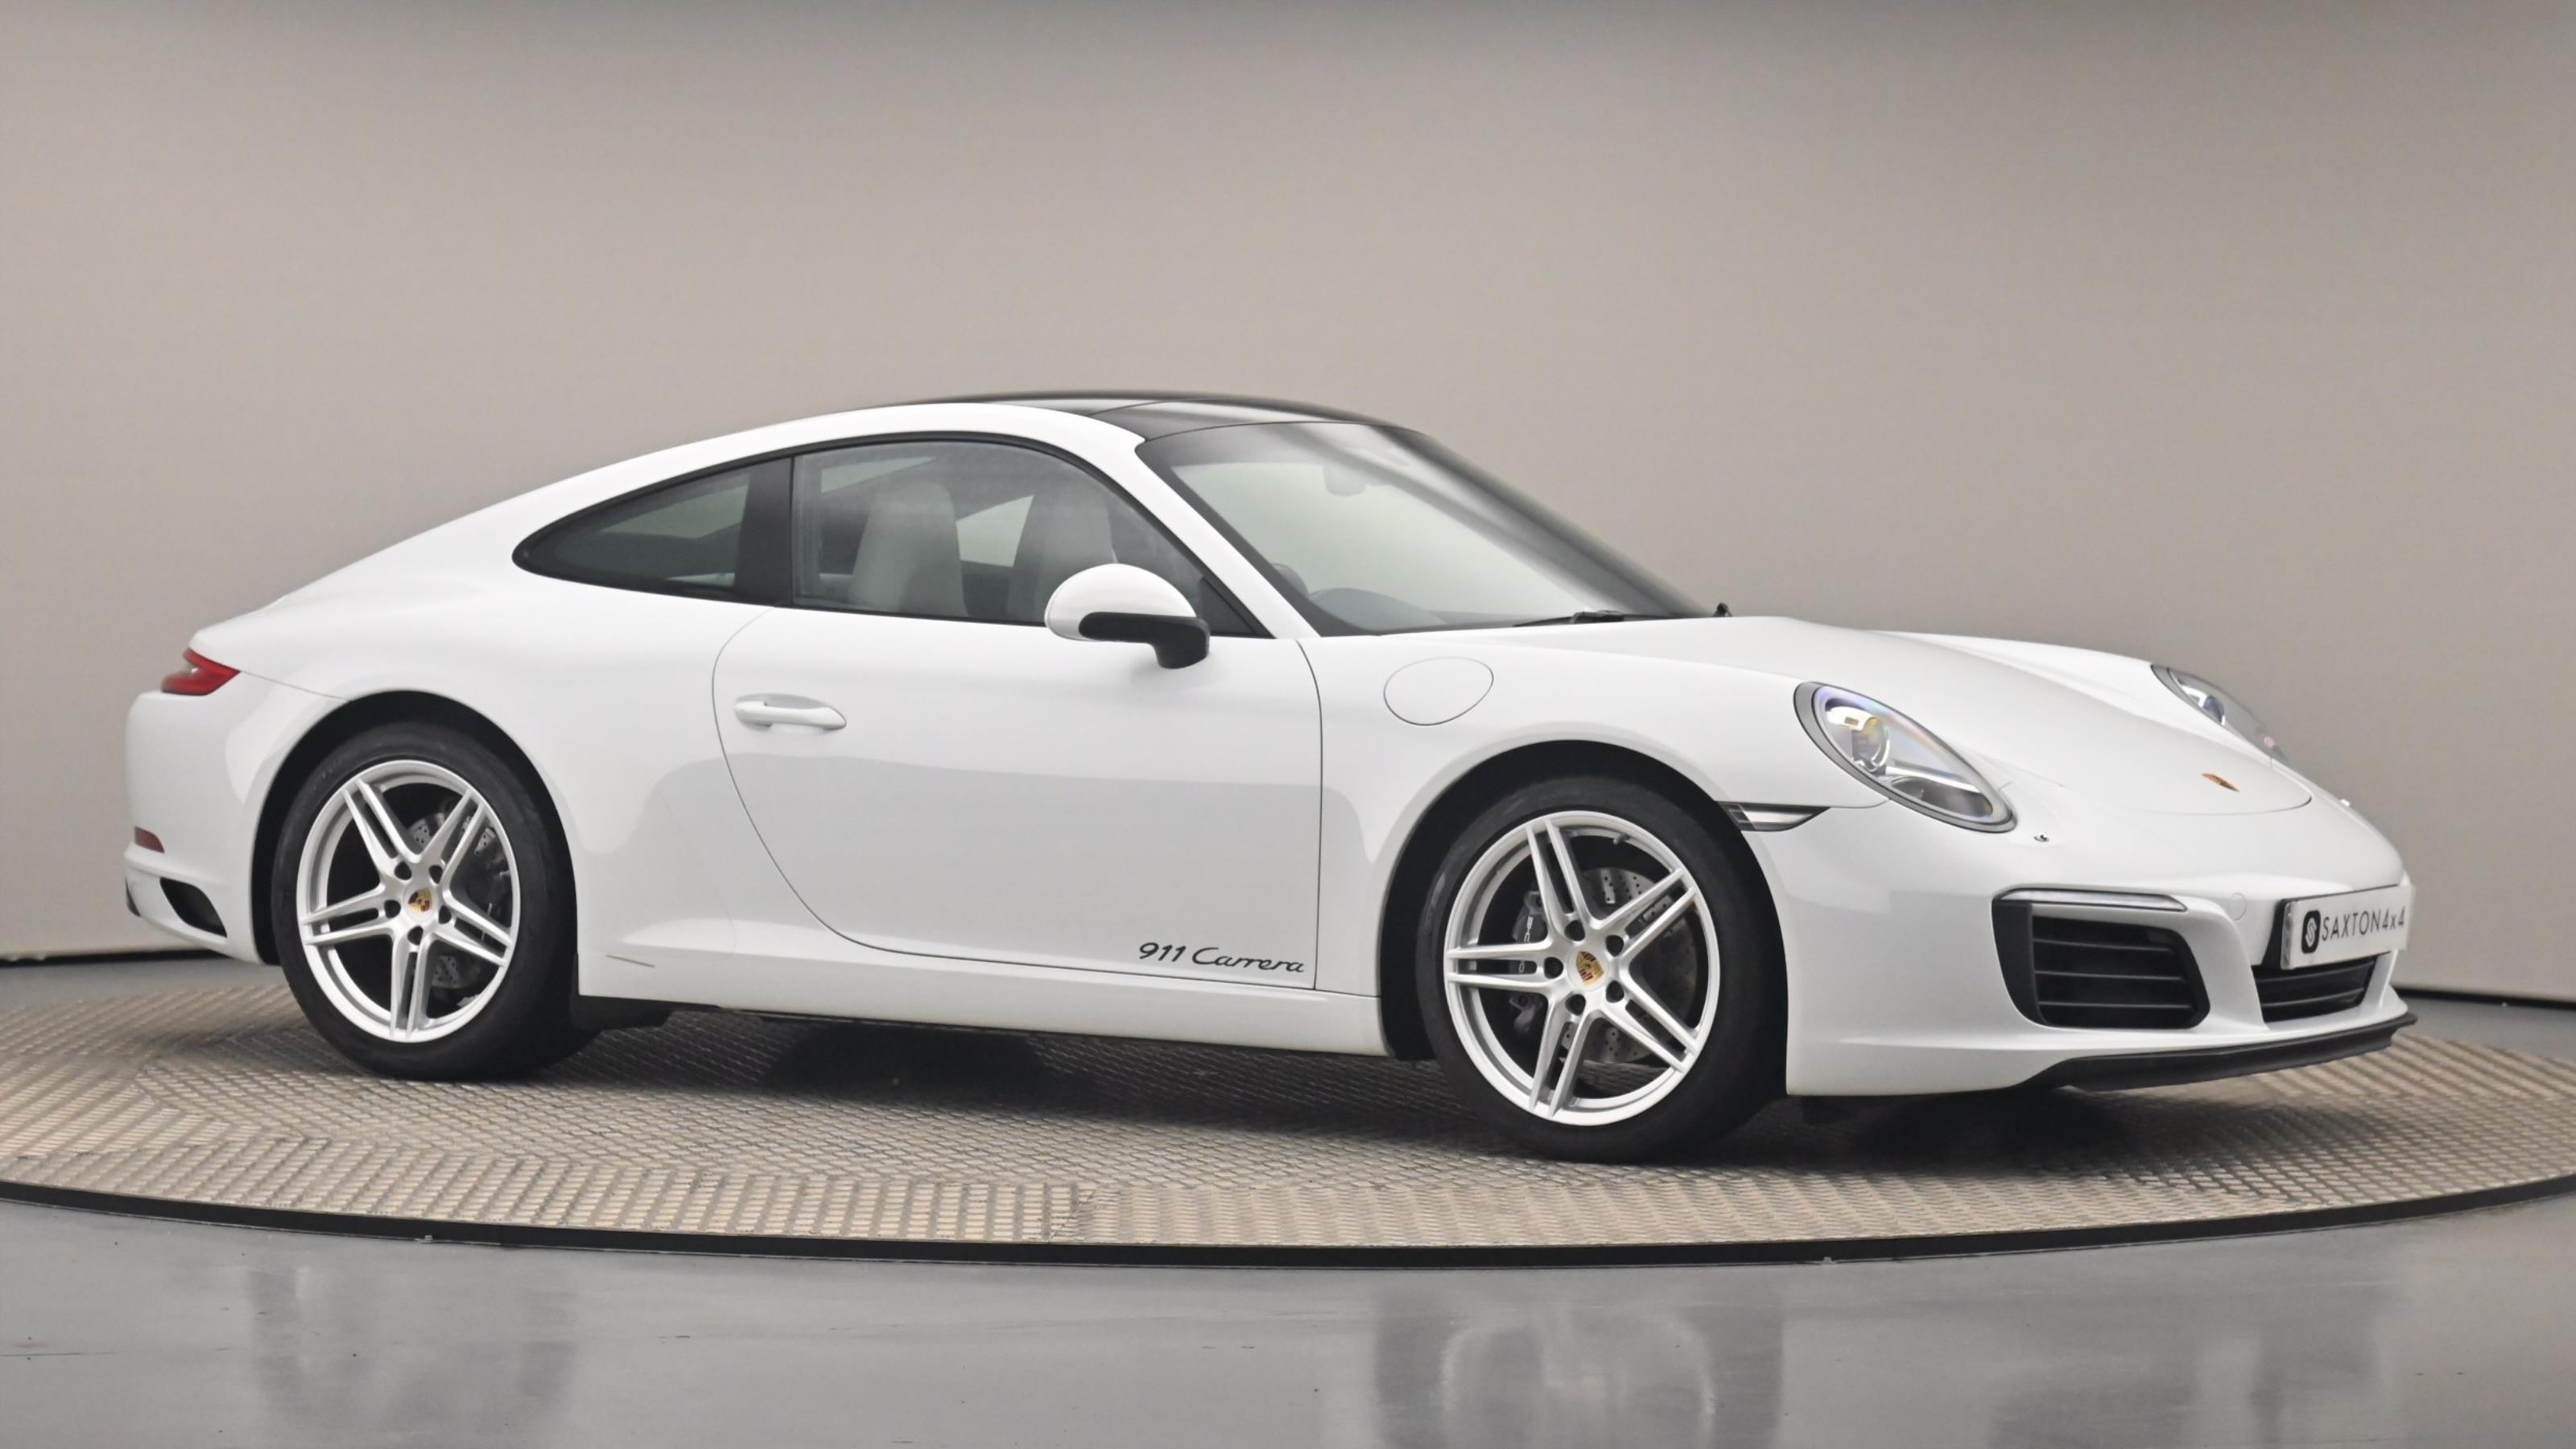 Used 2016 Porsche 911 2dr PDK White at Saxton4x4